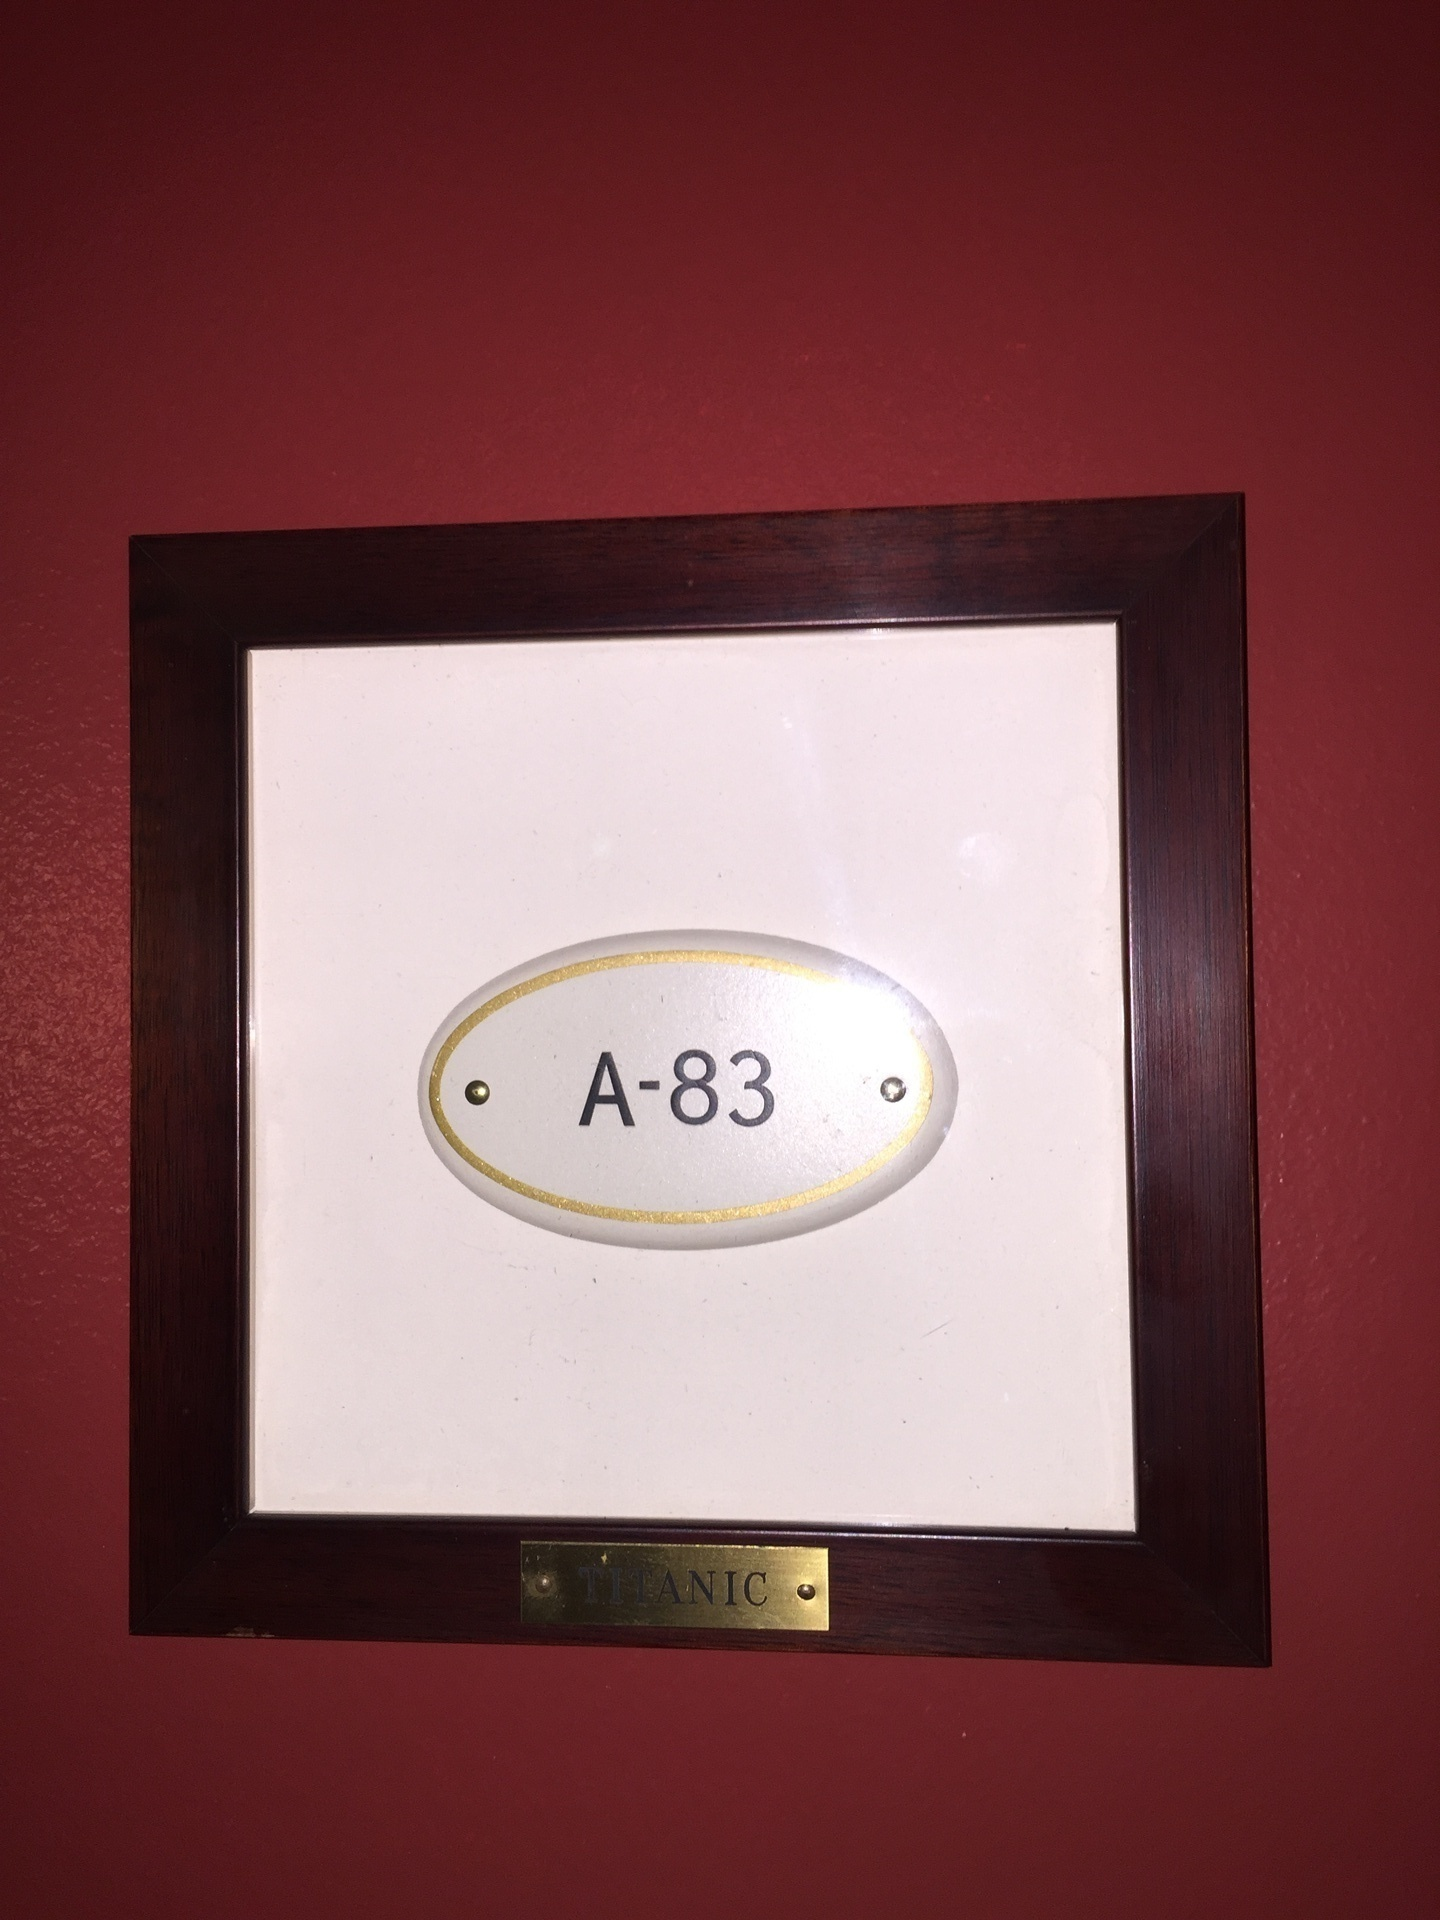 A-83 Stateroom Plaque